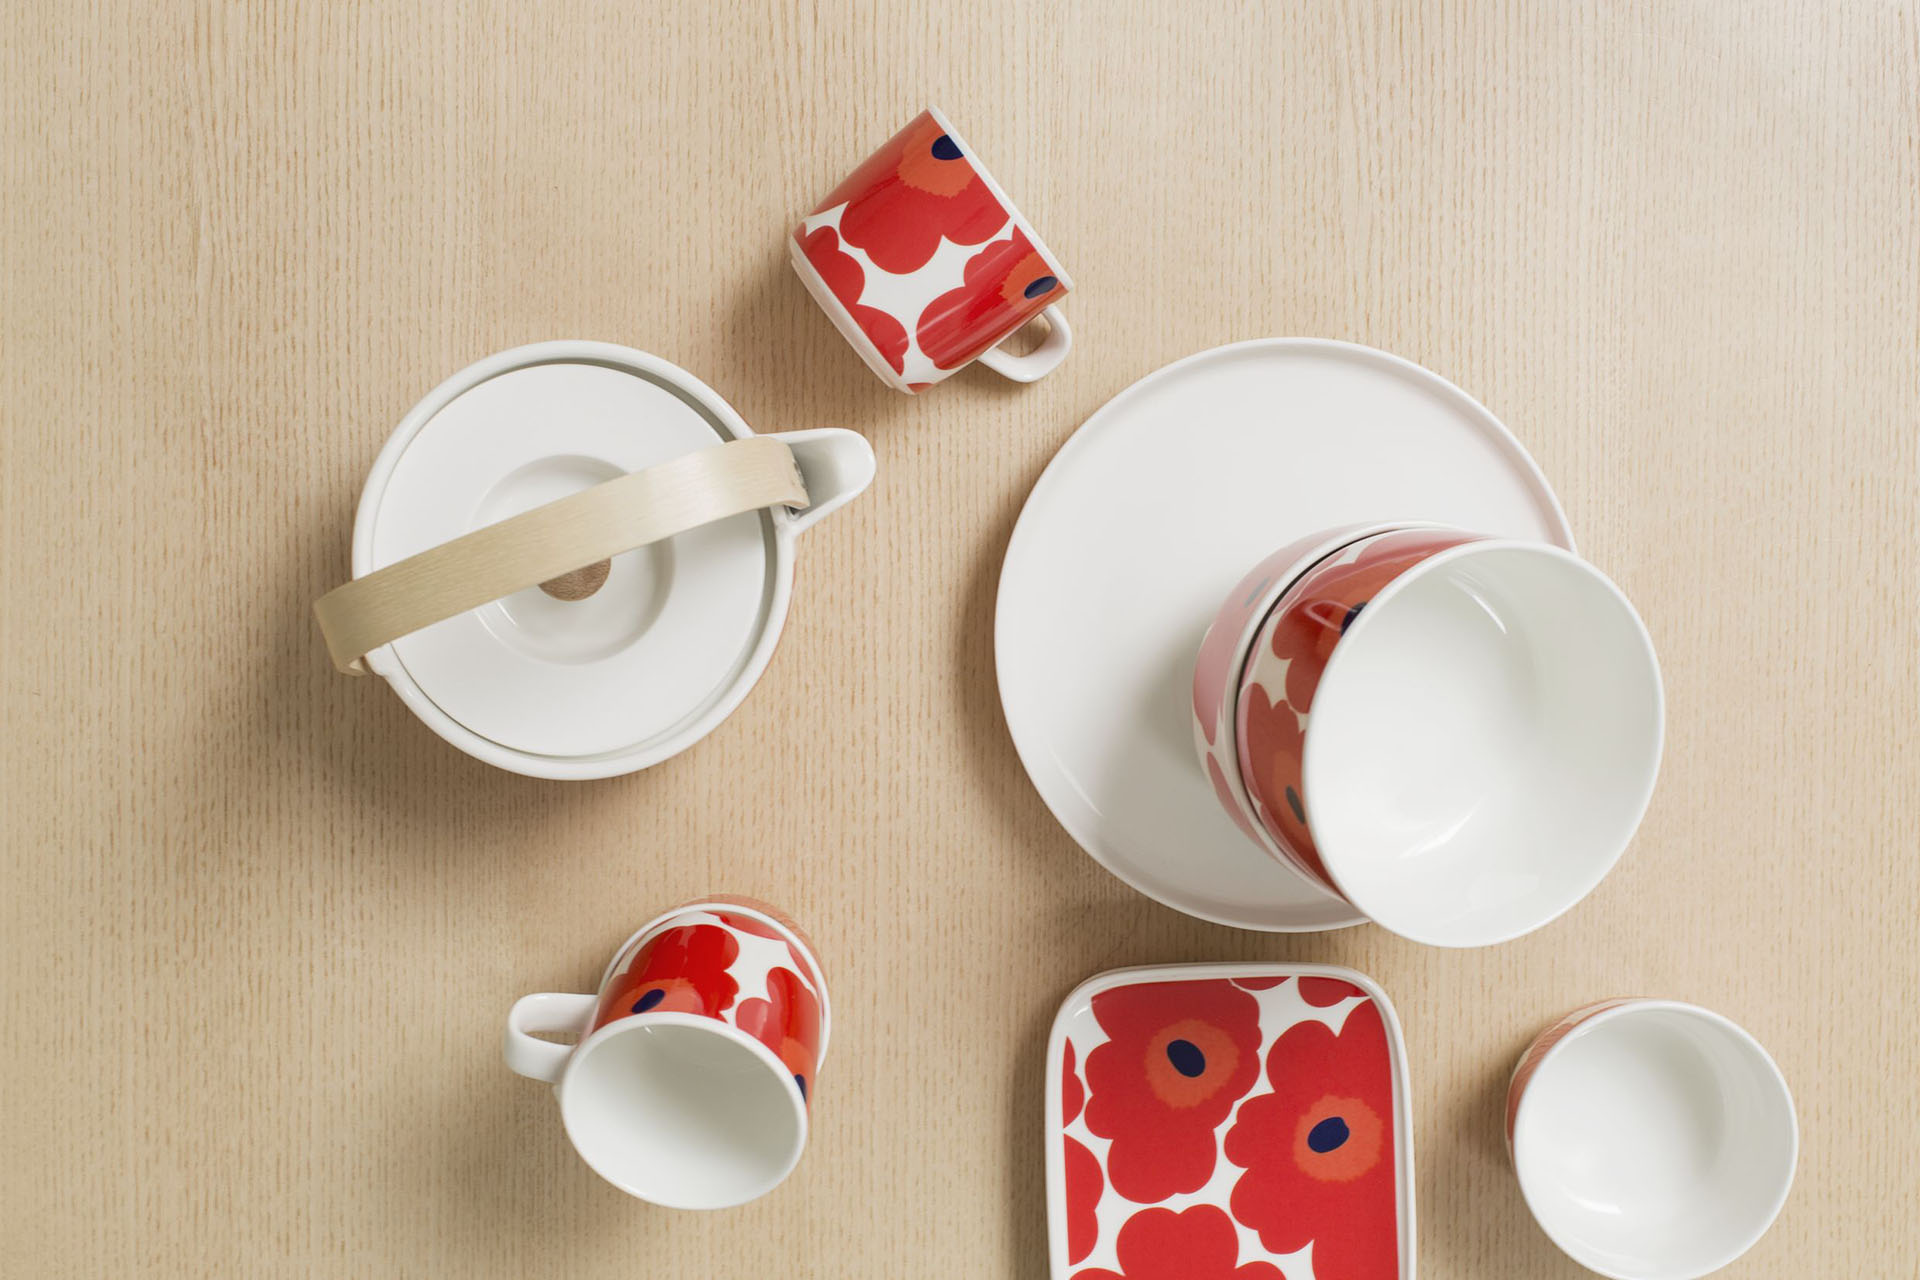 Marimekko - Unikko, a tea service in the iconic bright red motif that decorates the porcelain